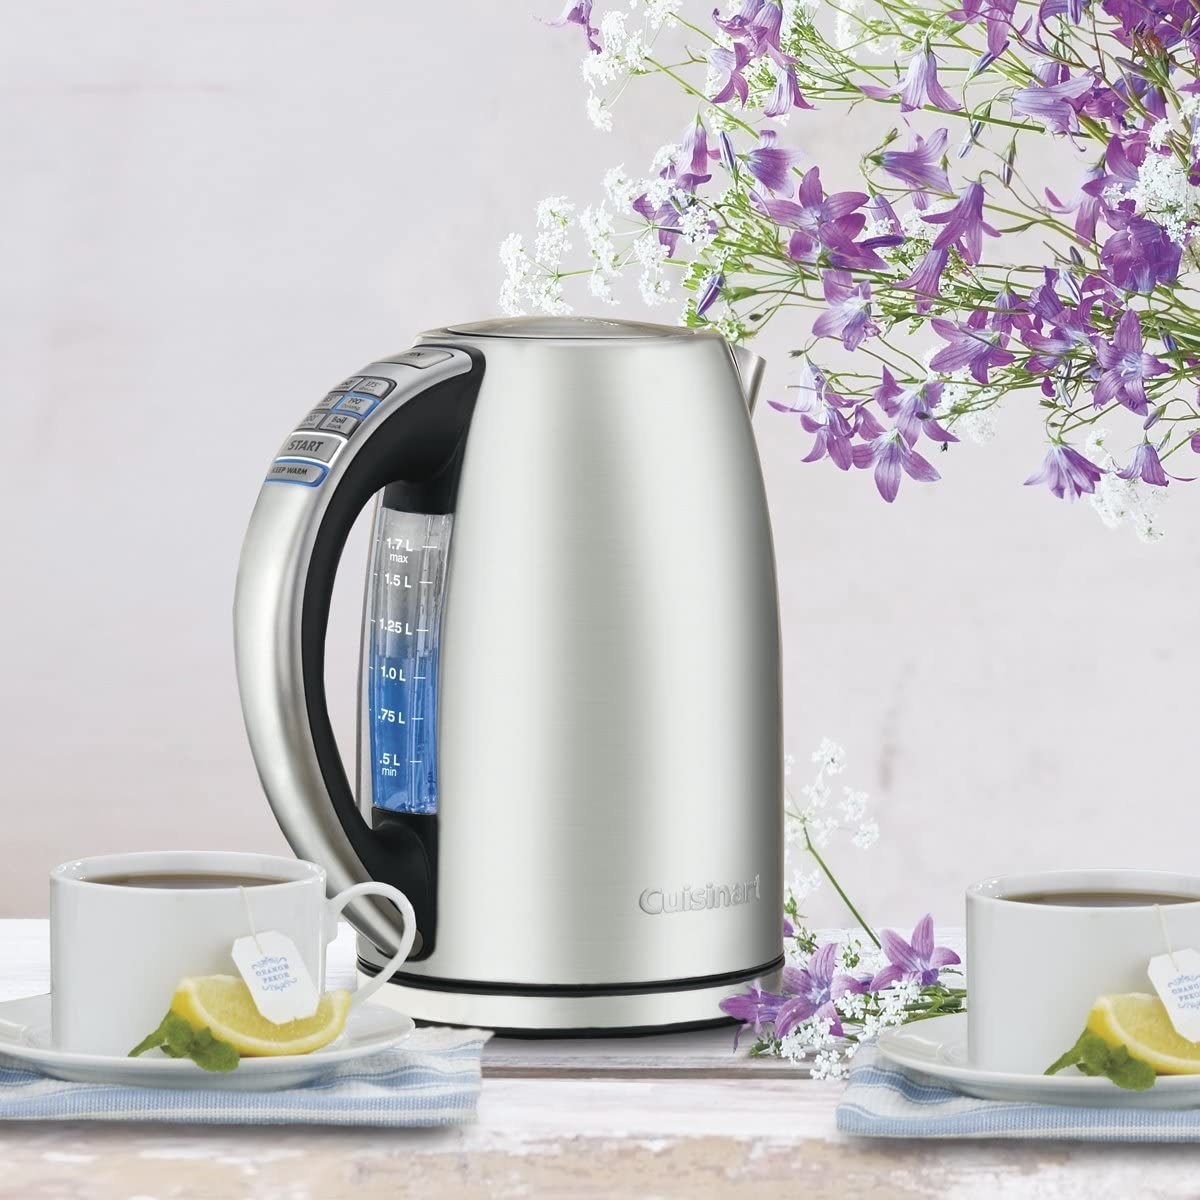 A kettle filled with water beside two cups of tea